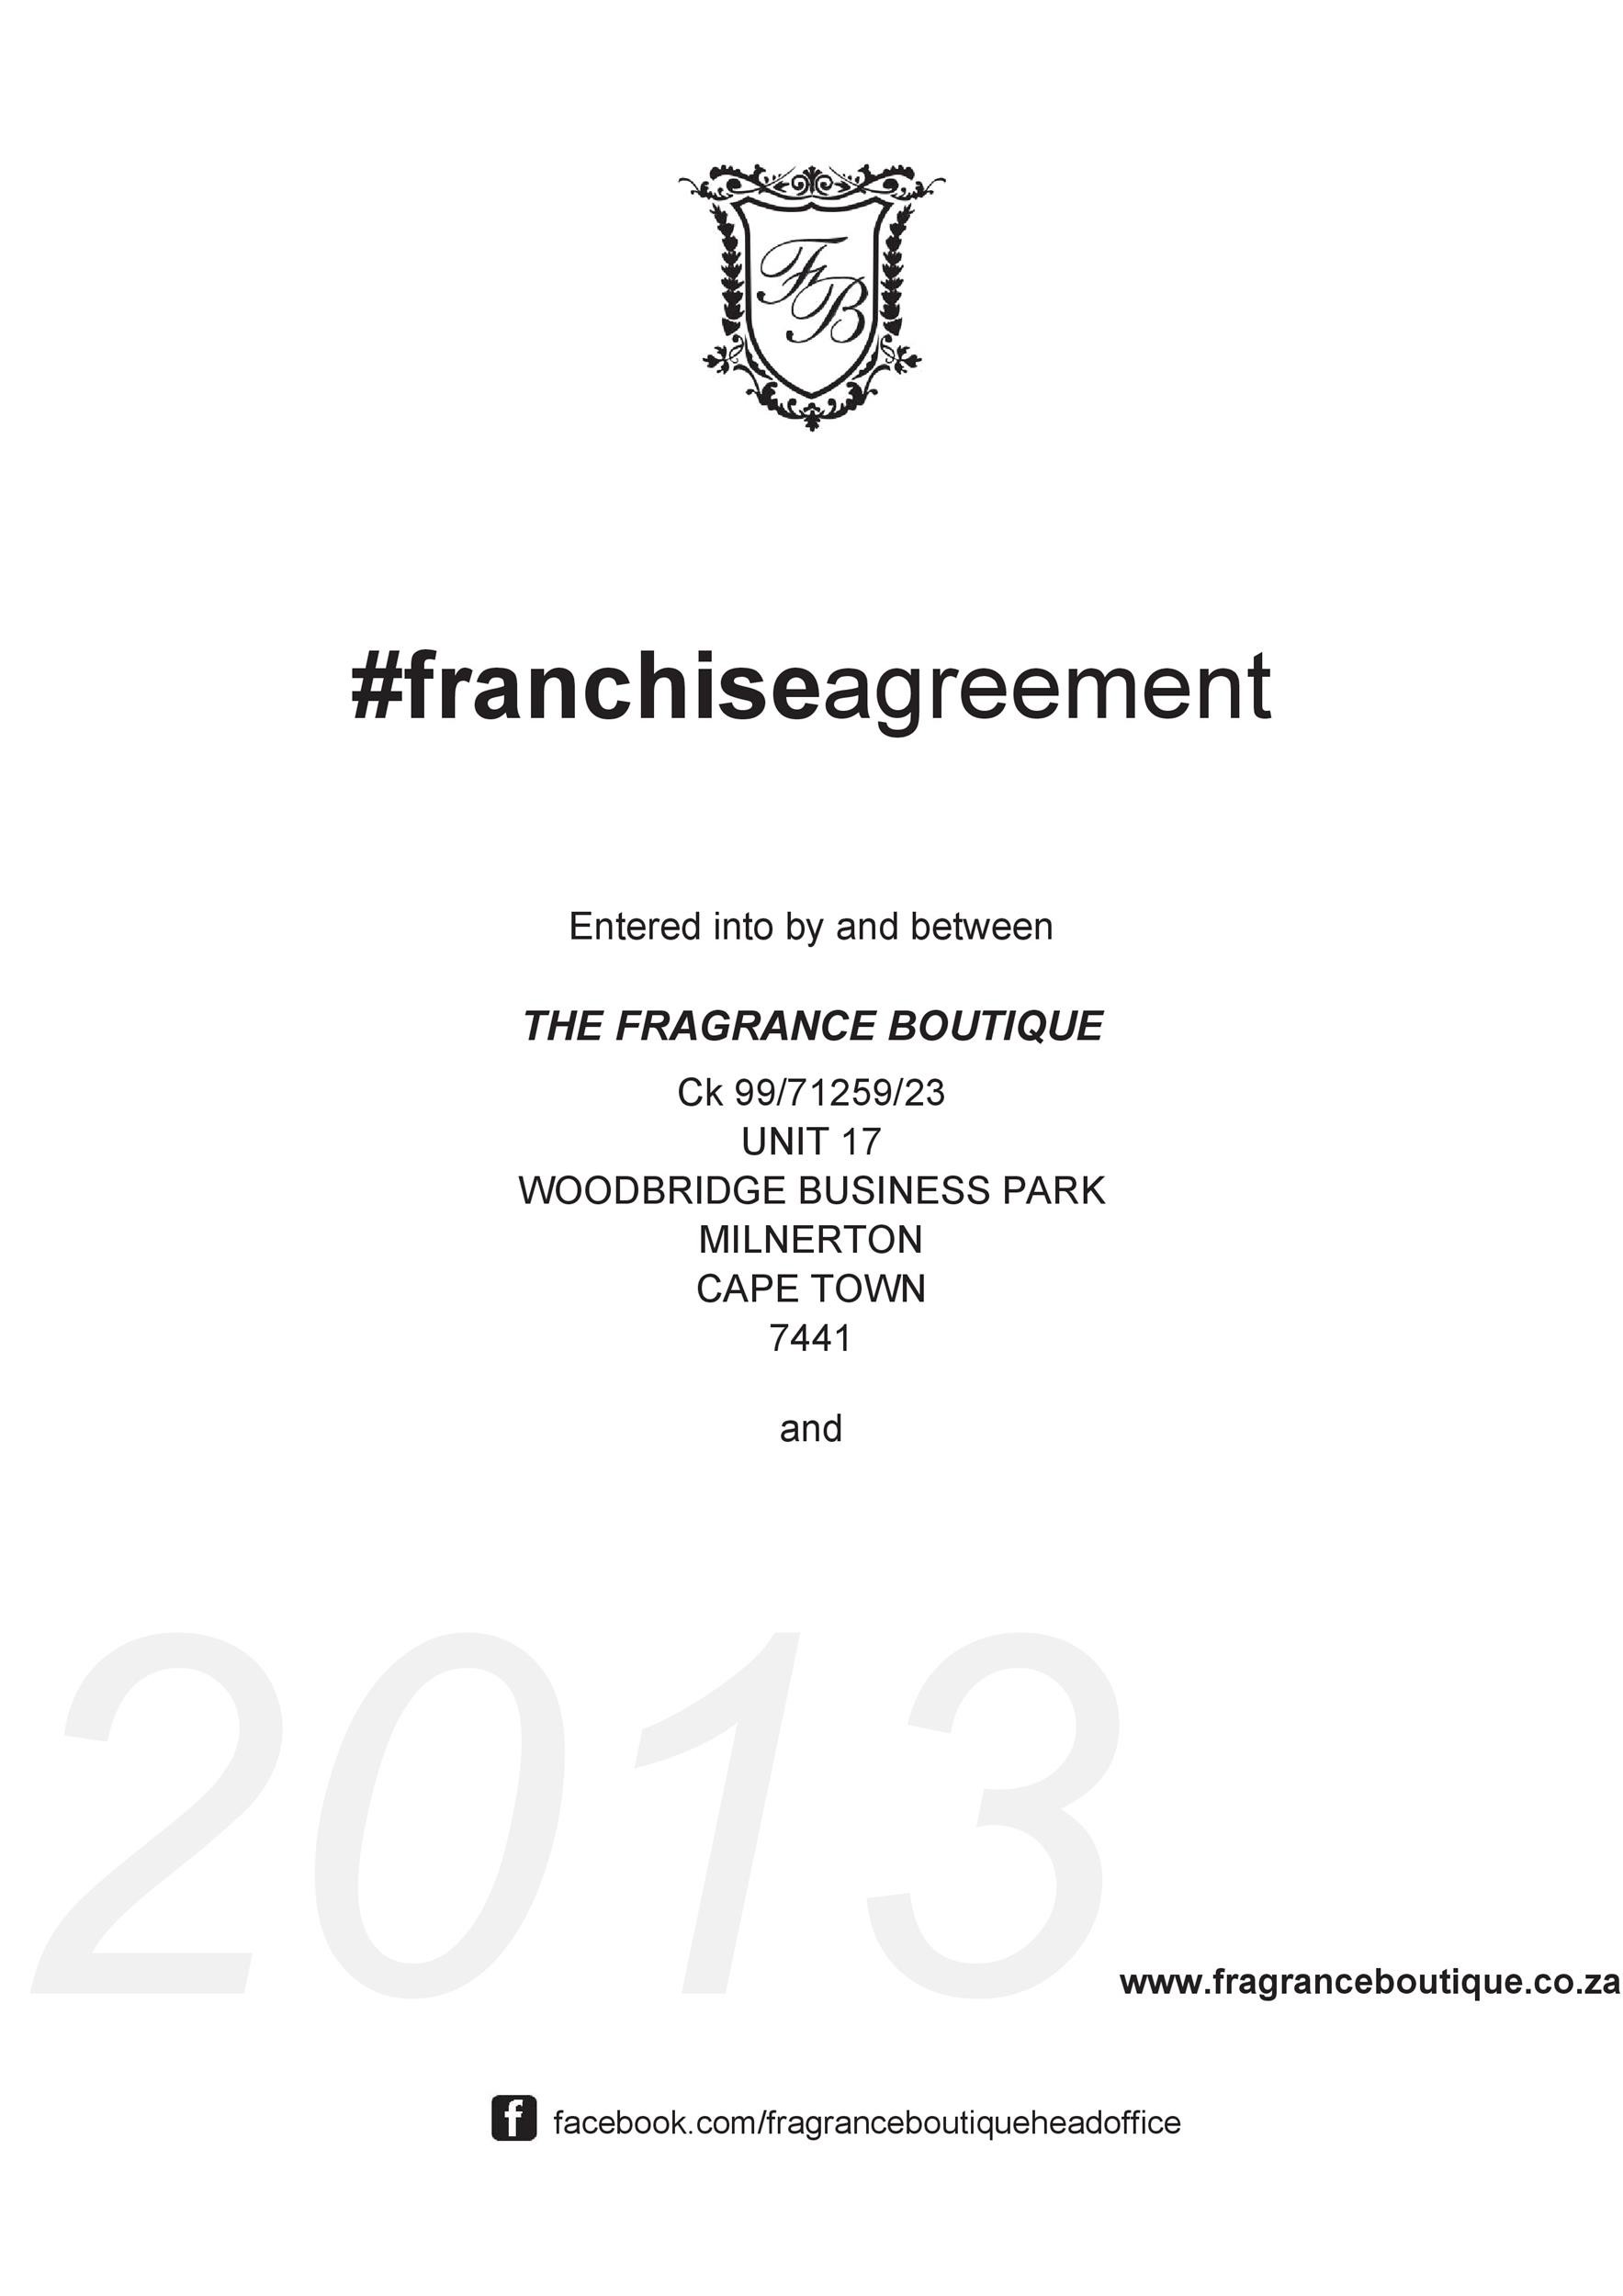 Free franchise agreement 25